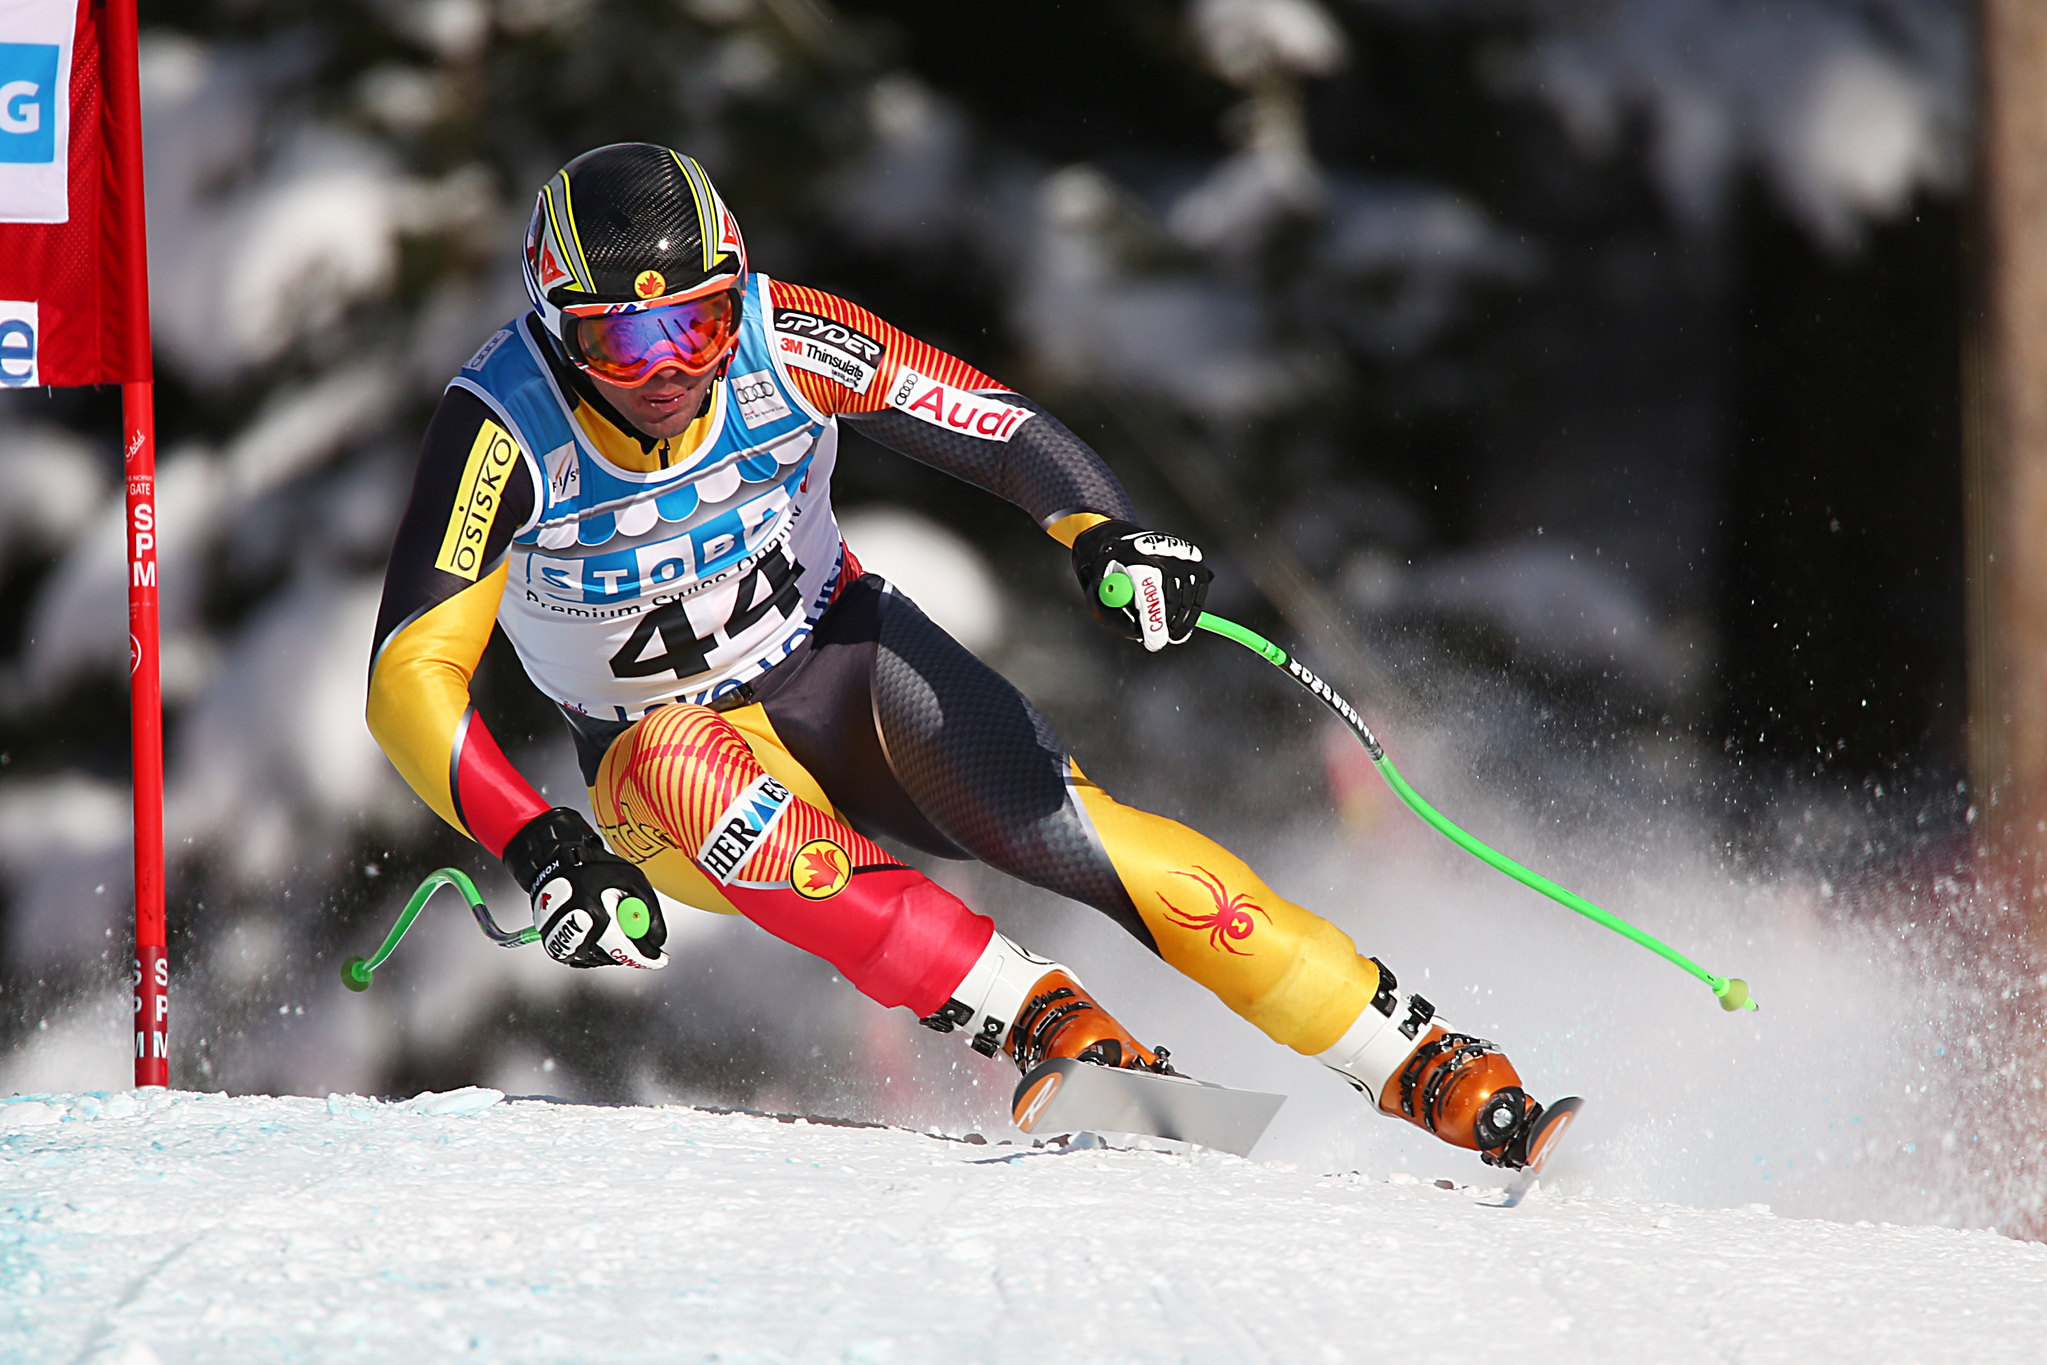 Manuel Osborne-Paradis during the second downhill training run in Lake Louise (Nov. 2012)